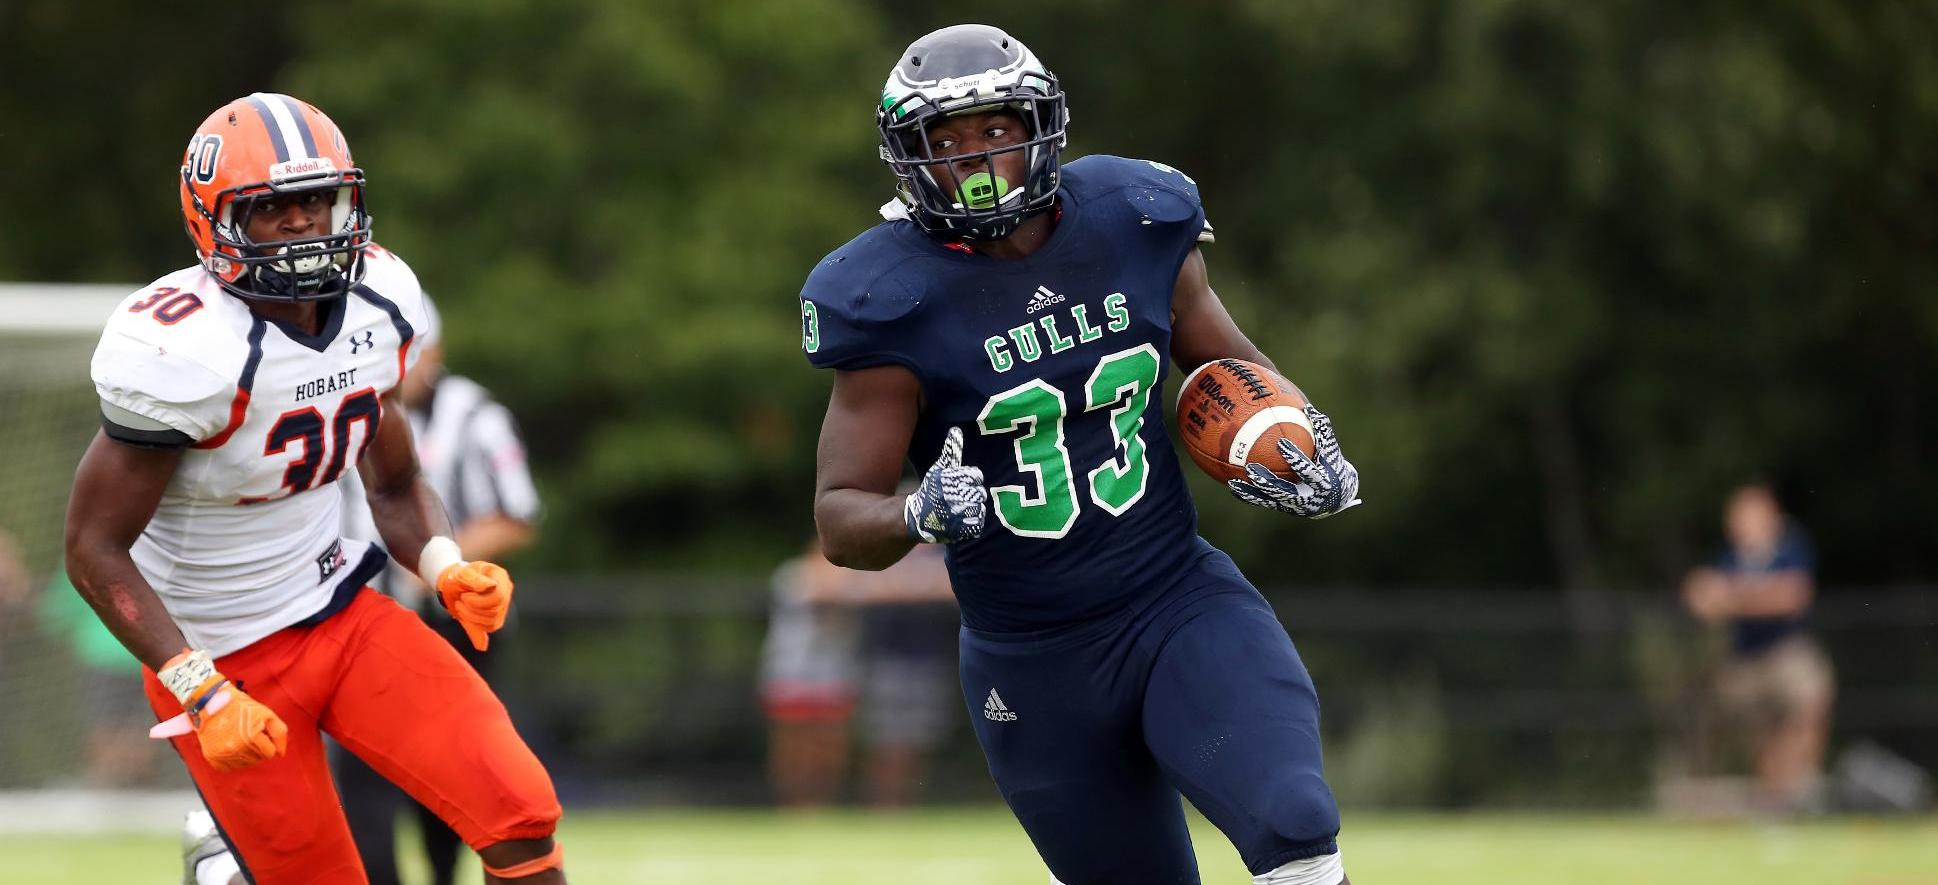 Endicott Takes Down Nichols 37-0 On Homecoming For First NEFC Win